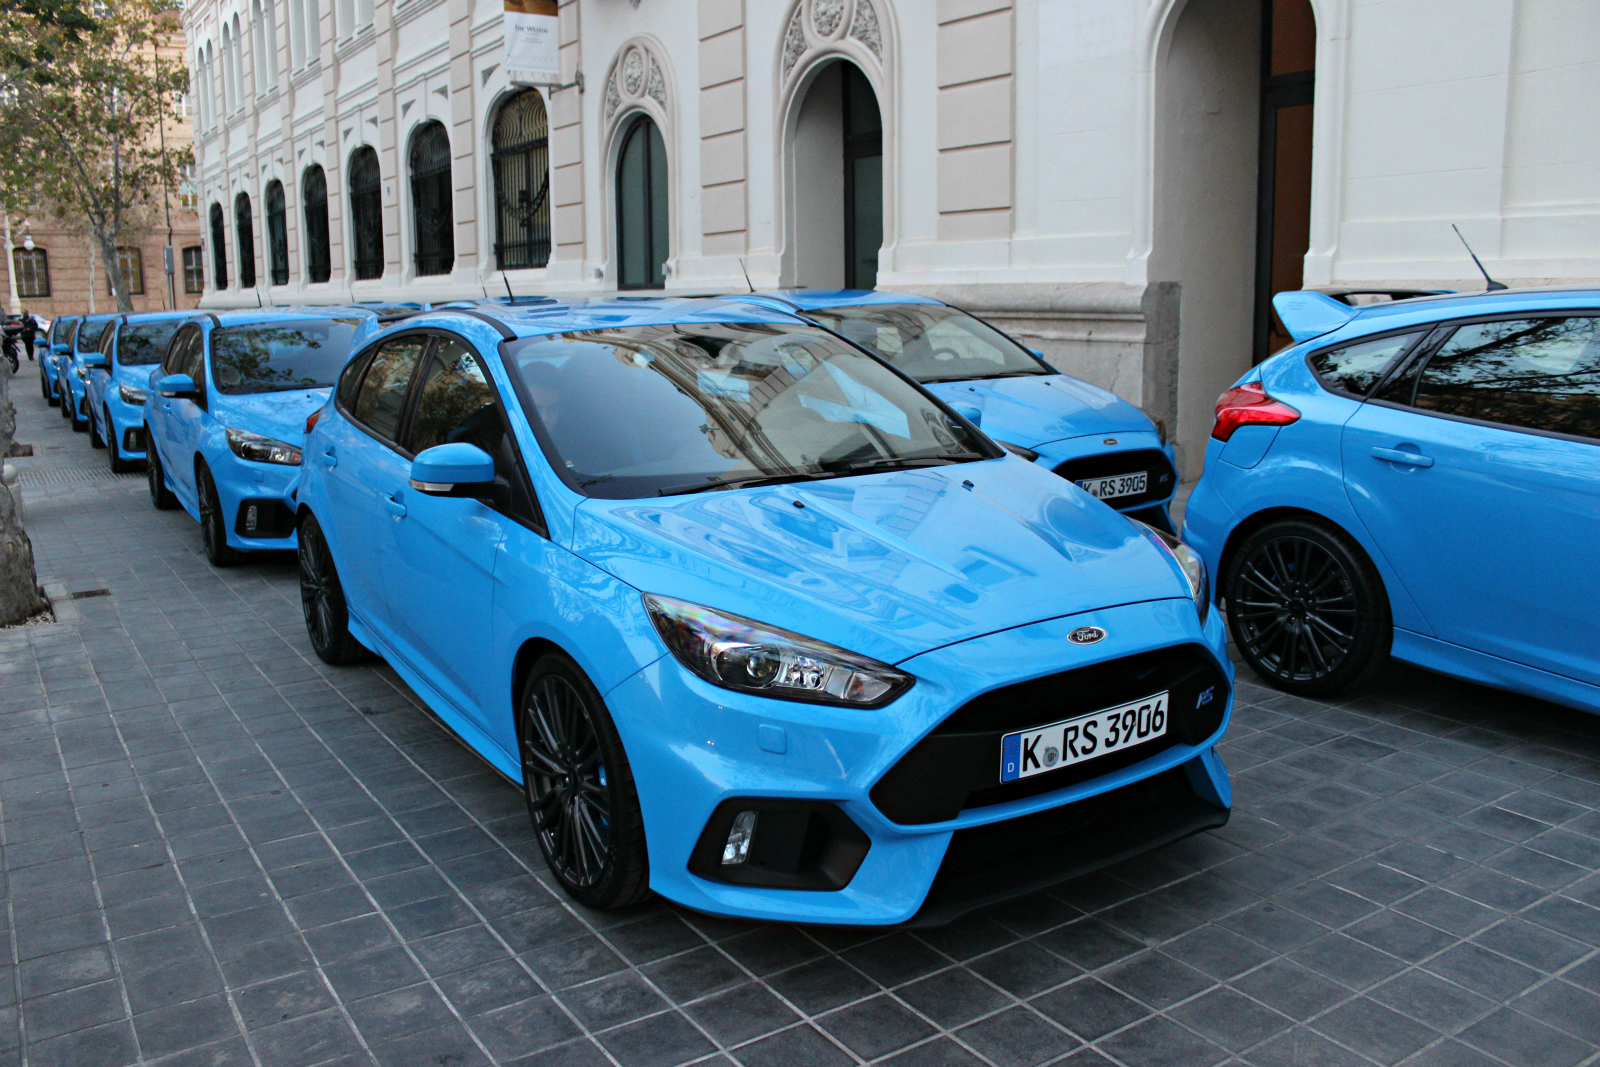 essai vid o ford focus rs mamie cosworth peut tre fi re. Black Bedroom Furniture Sets. Home Design Ideas